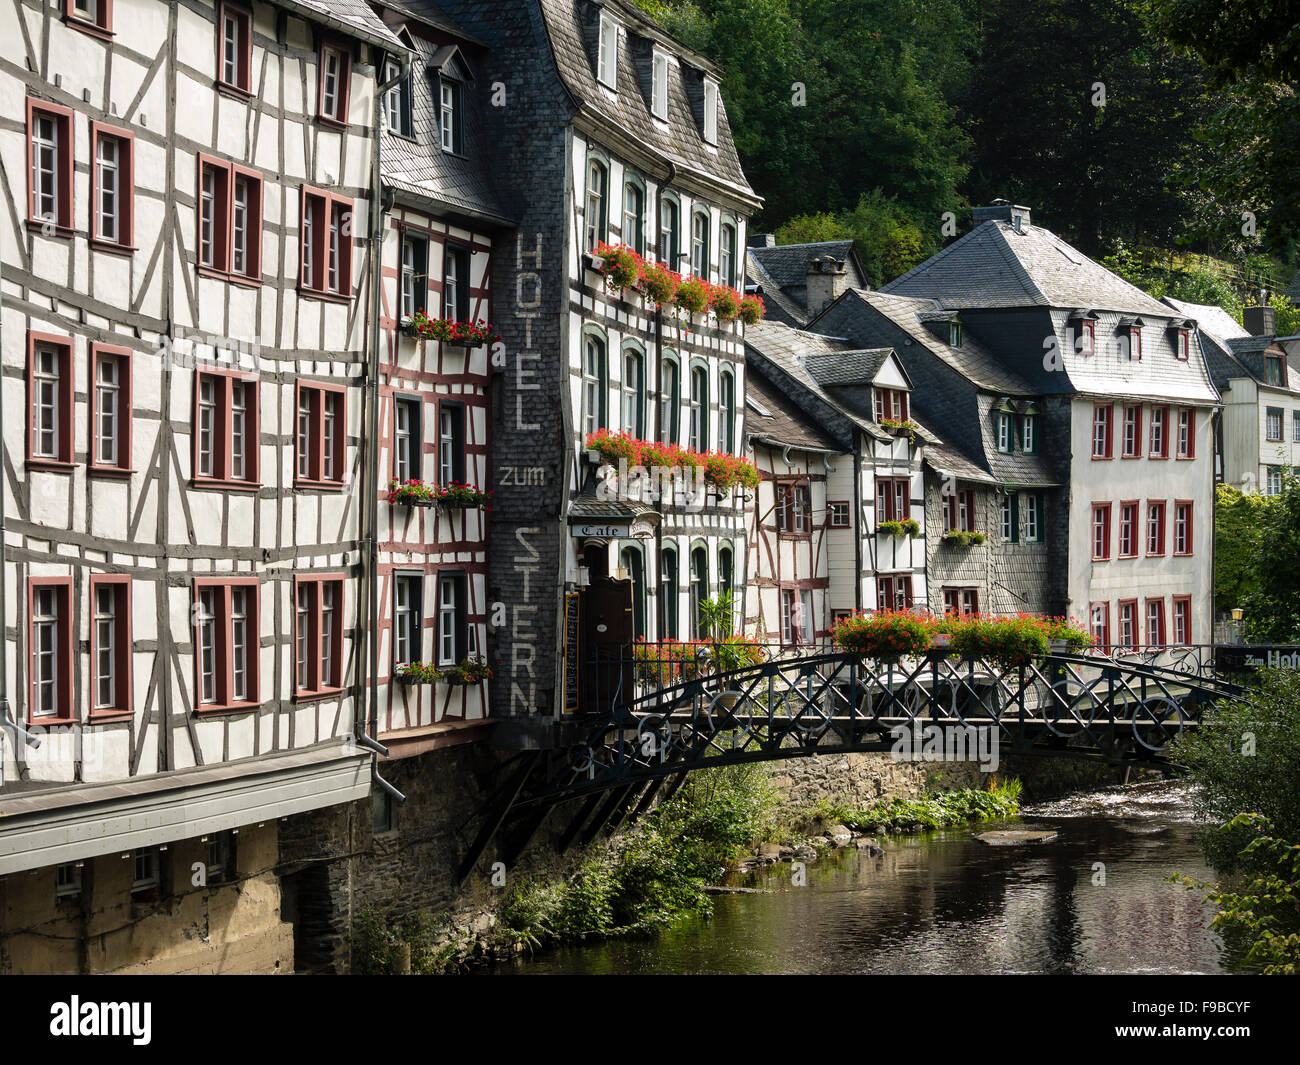 Old half-timbered houses above the river Rur in the town of Monschau / Eifel region / Germany. - Stock Image